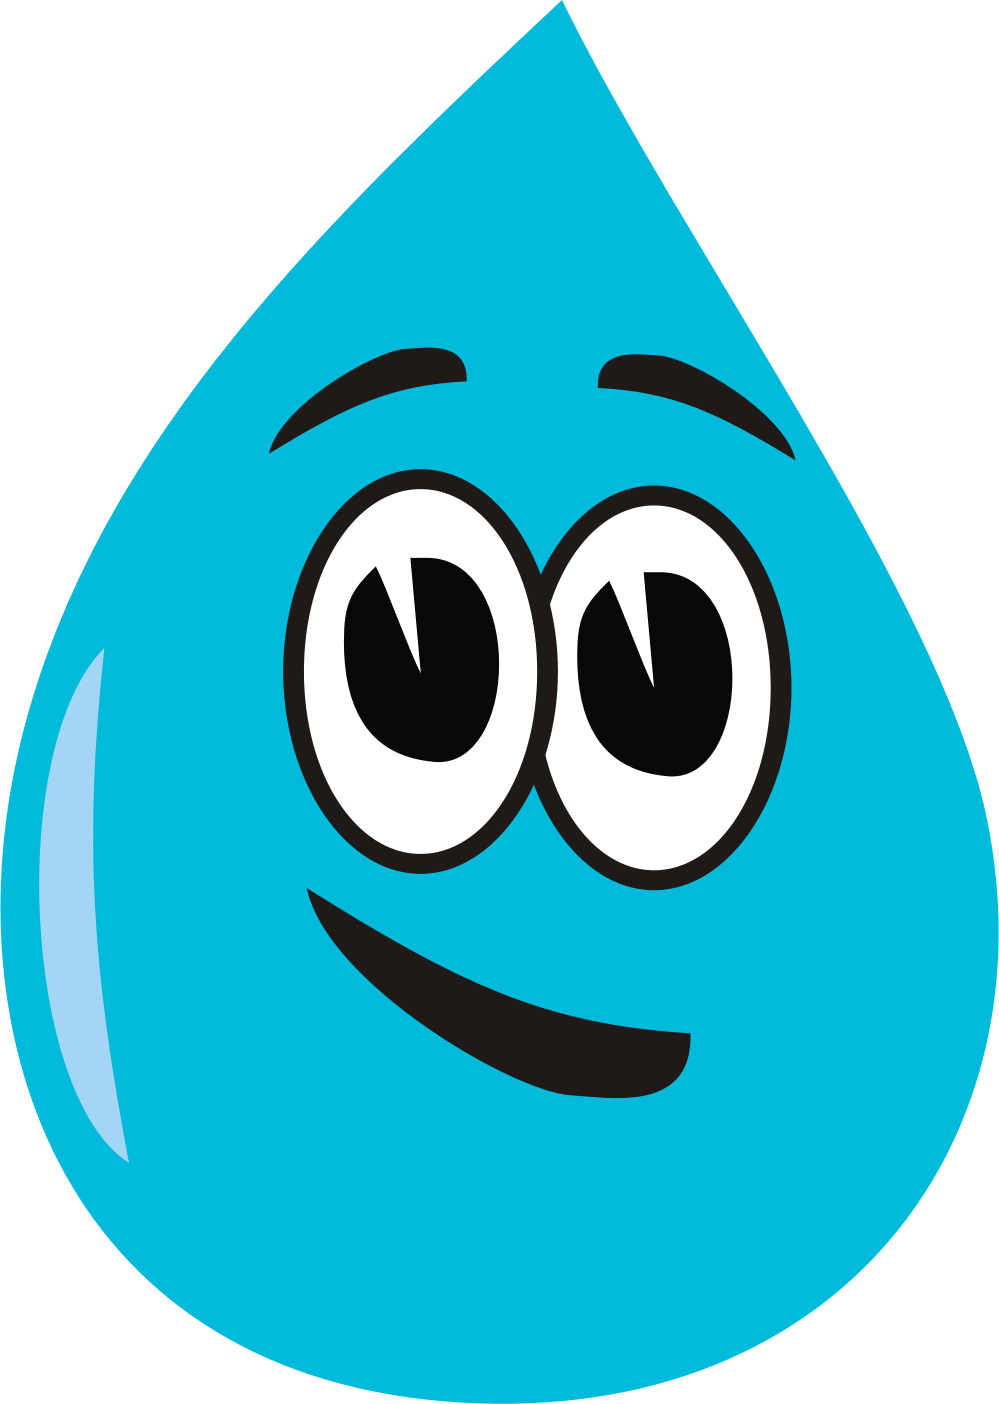 Water clipart water droplet.  collection of happy